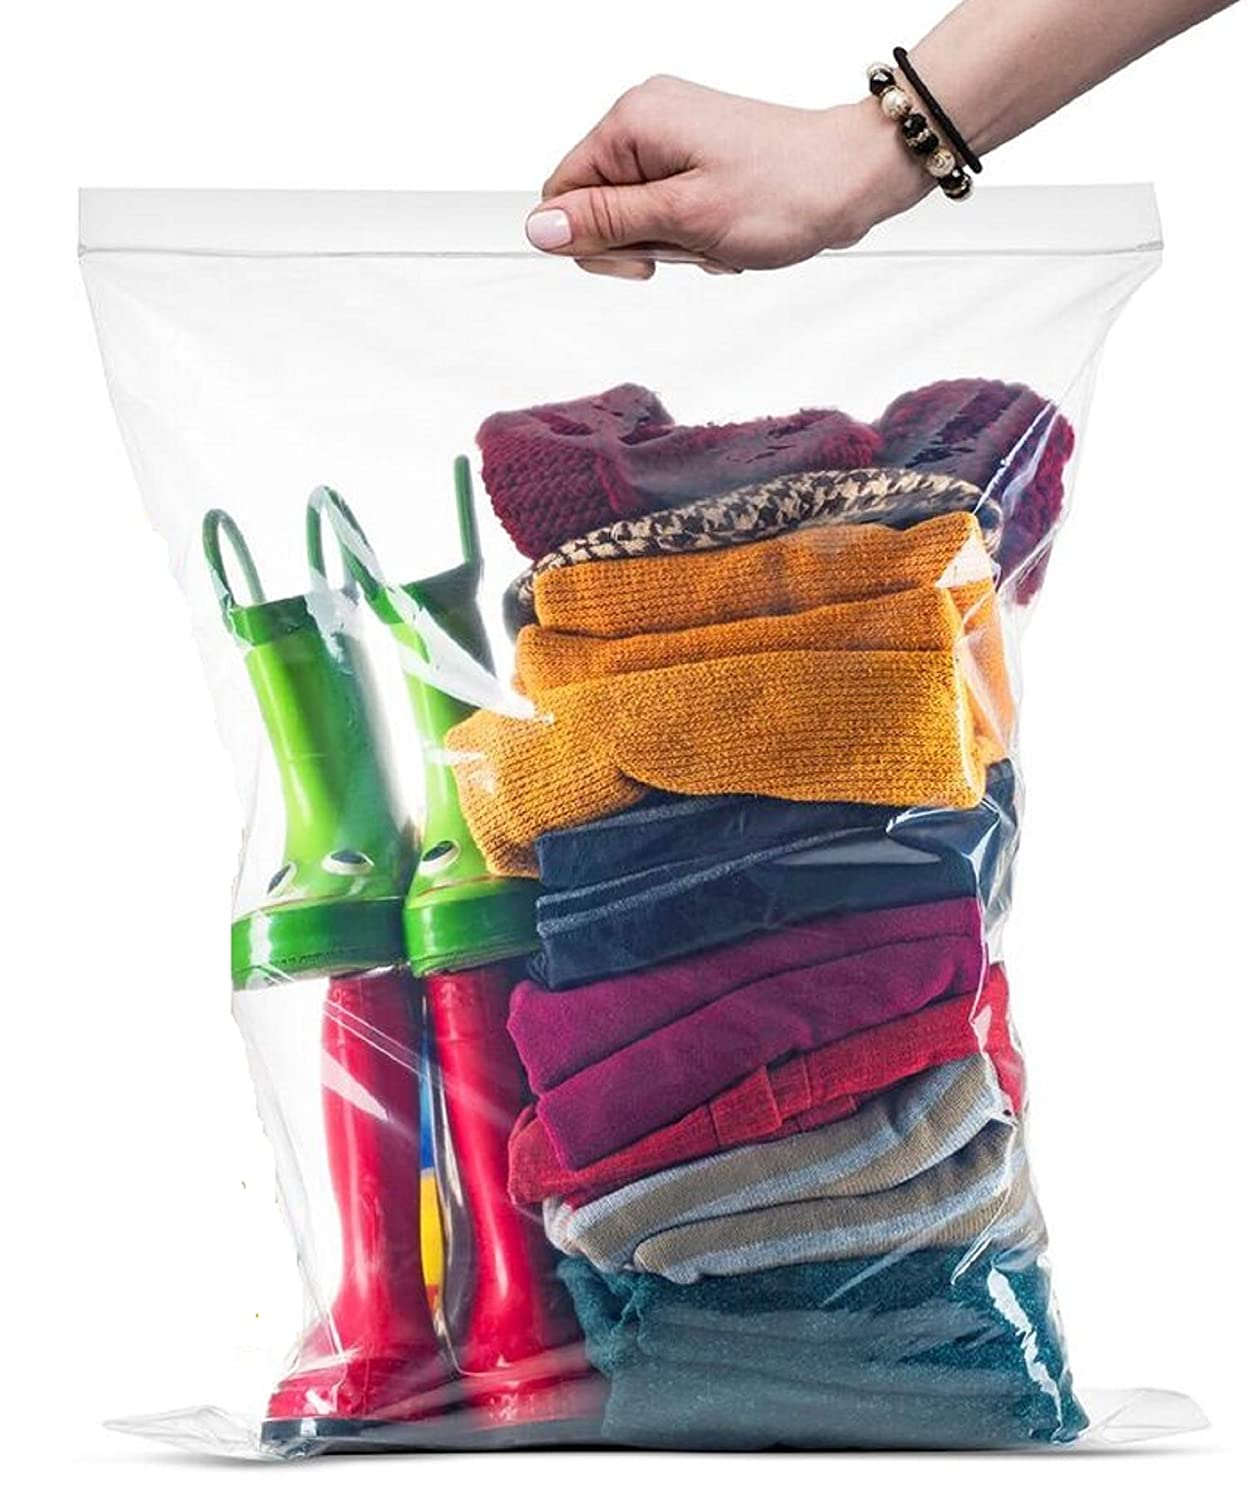 "[PACK OF 25] Extra X-Large Big 5 Gallon Ziplock Bags For Food Prep, Travel, Organization, Moving or Storage, 2 Mil. Thick, 18"" x 24"","